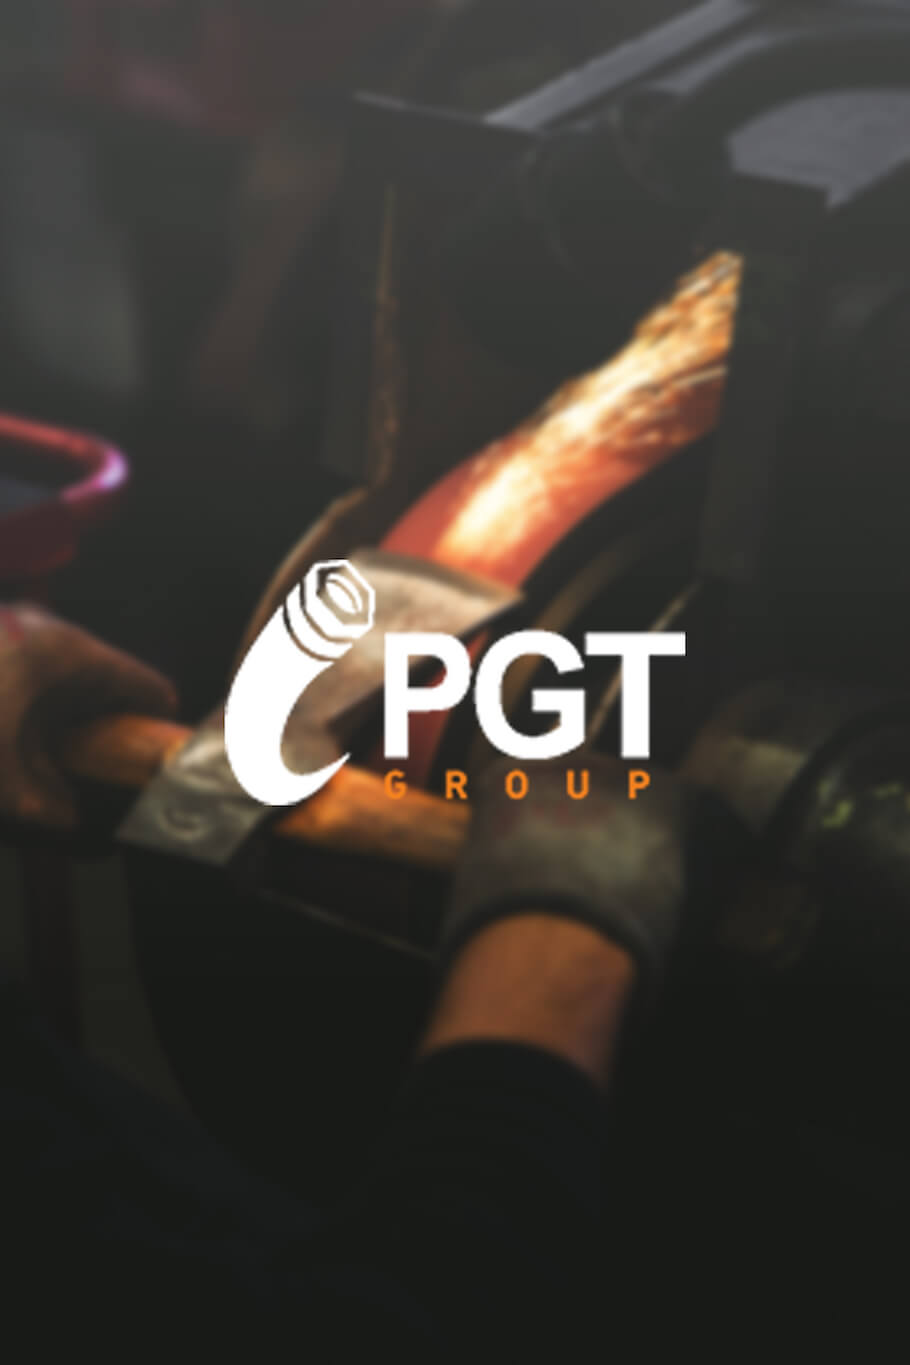 Corporate site for PGT Group